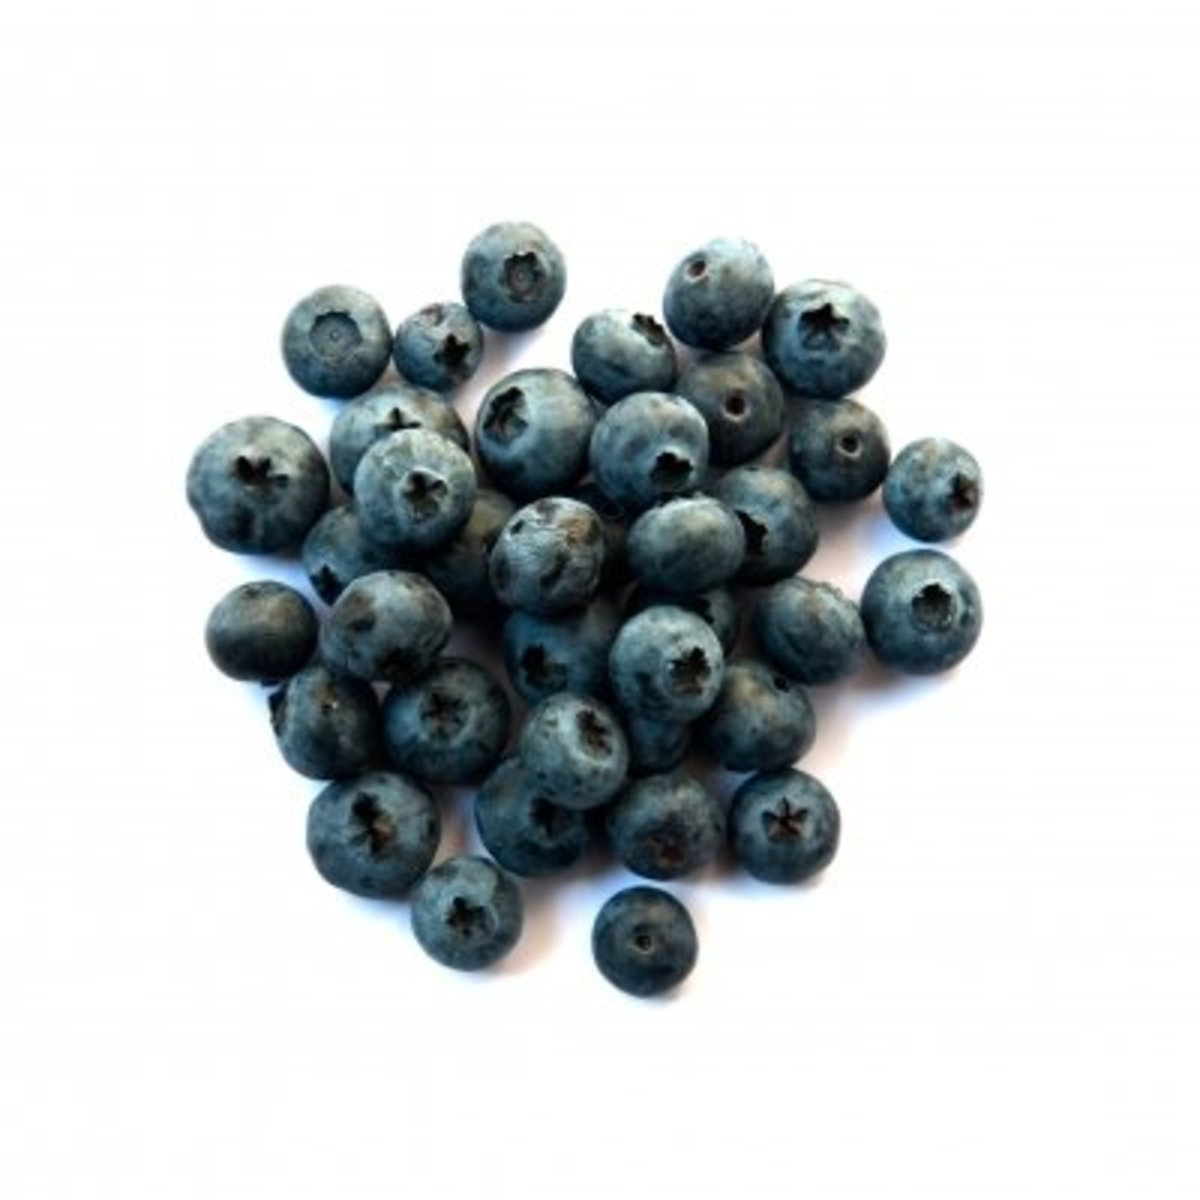 Nutritional and Health Benefits of Blueberries